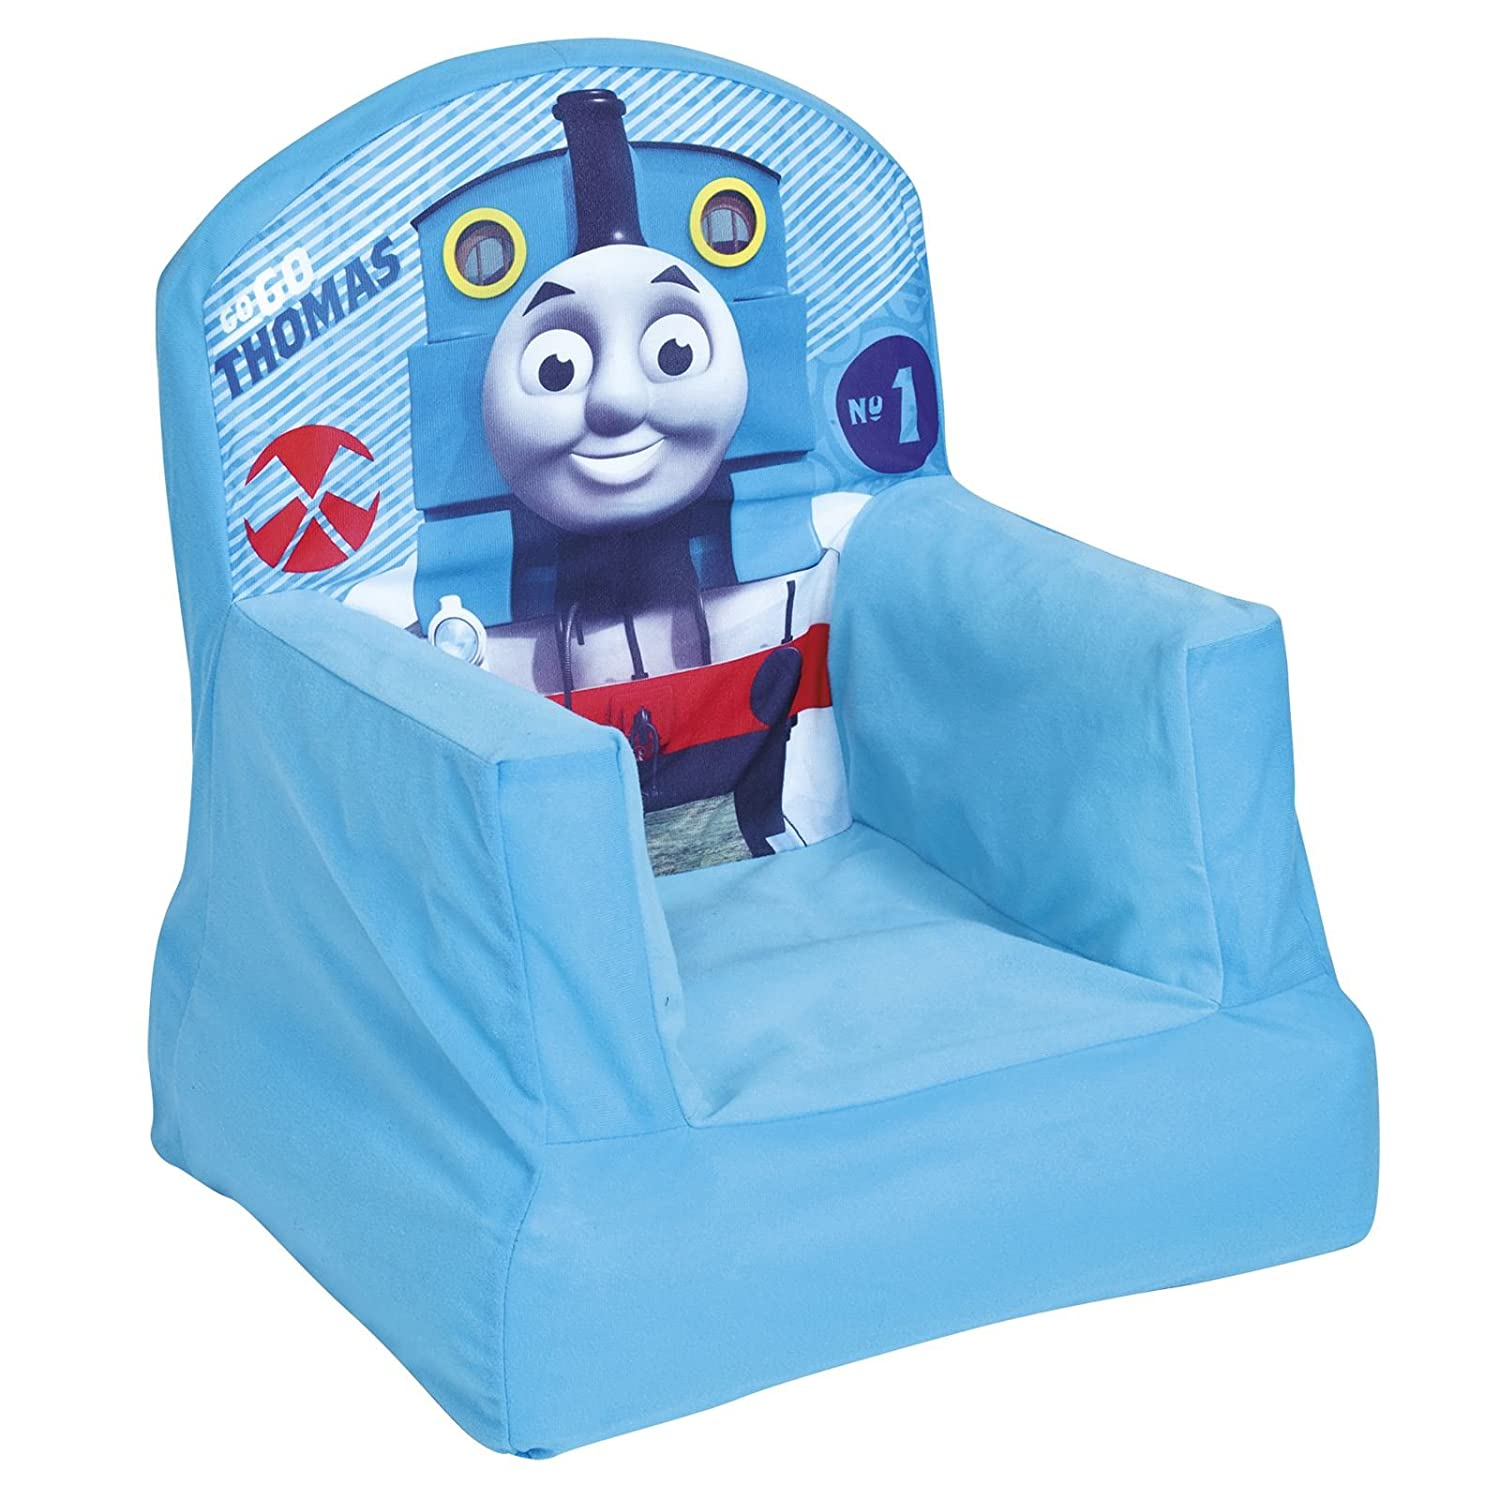 Thomas the Tank Engine Inflatable Chair for Kids Thomas & Friends